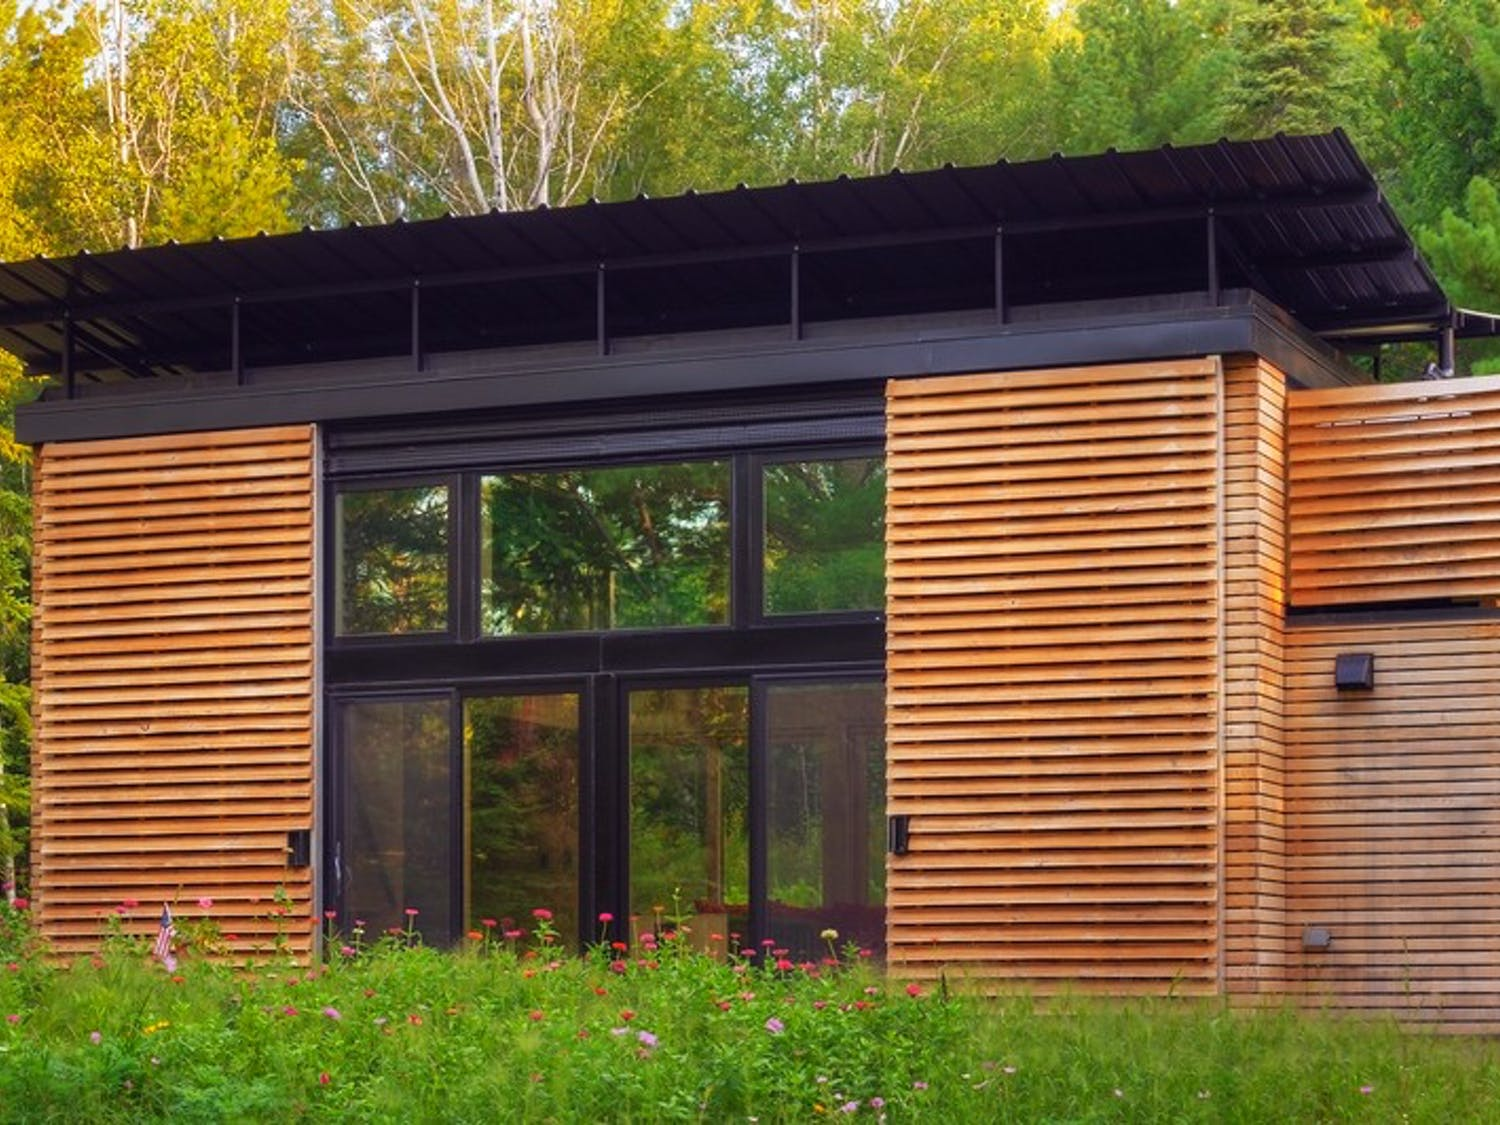 Bill Yudchitz and his son Dan designed and built the award-winning Experimental Dwelling for a Greener Environment.